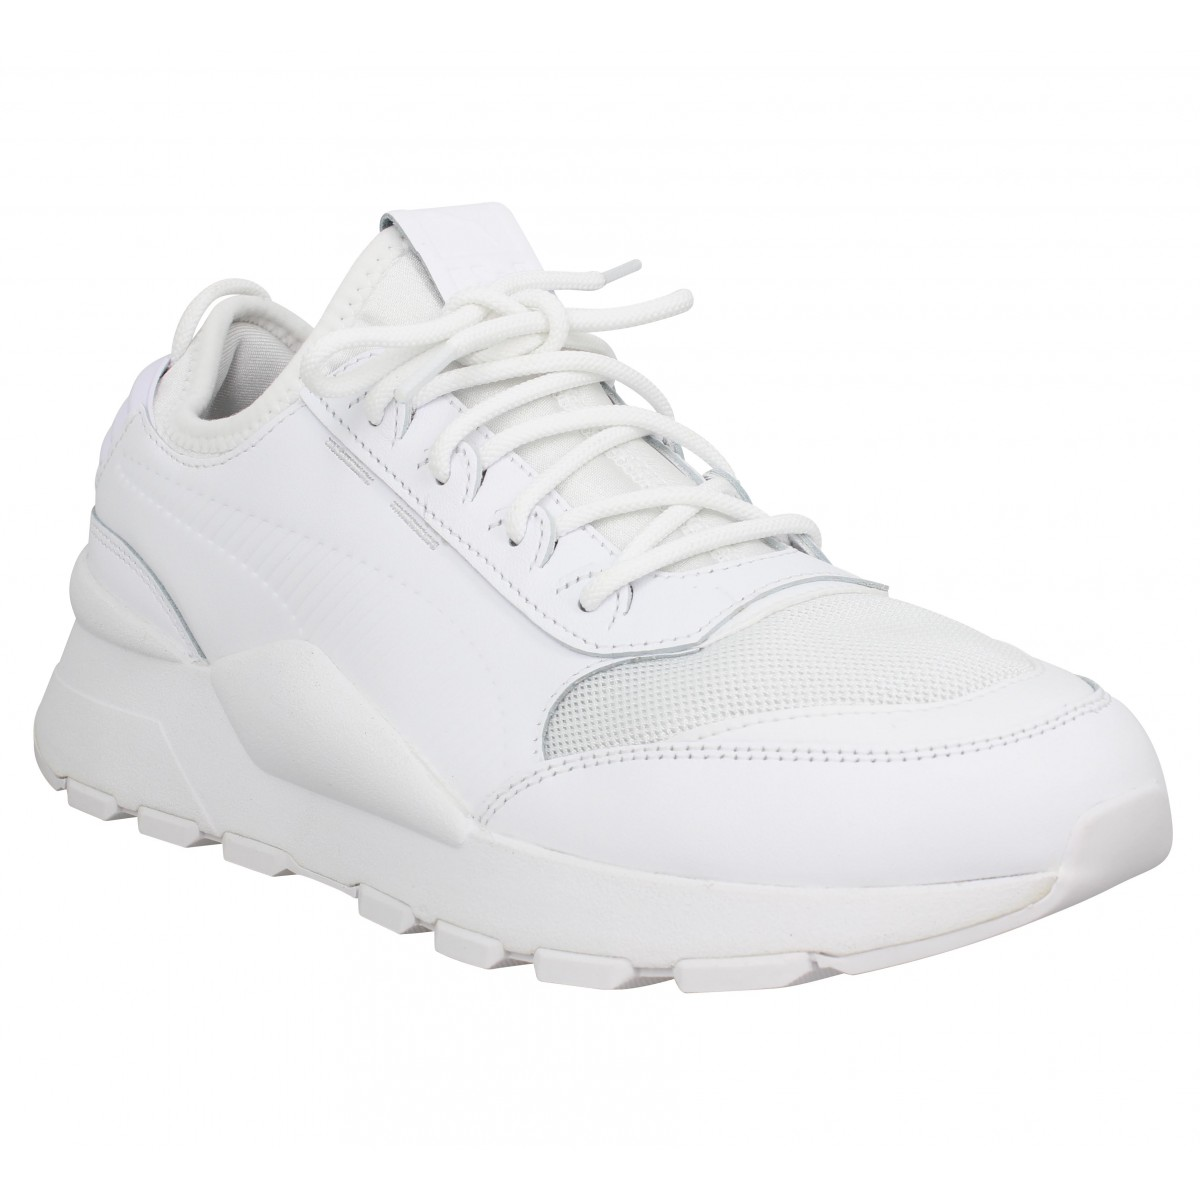 Puma Homme Rs-0 Sound Toile -45-blanc